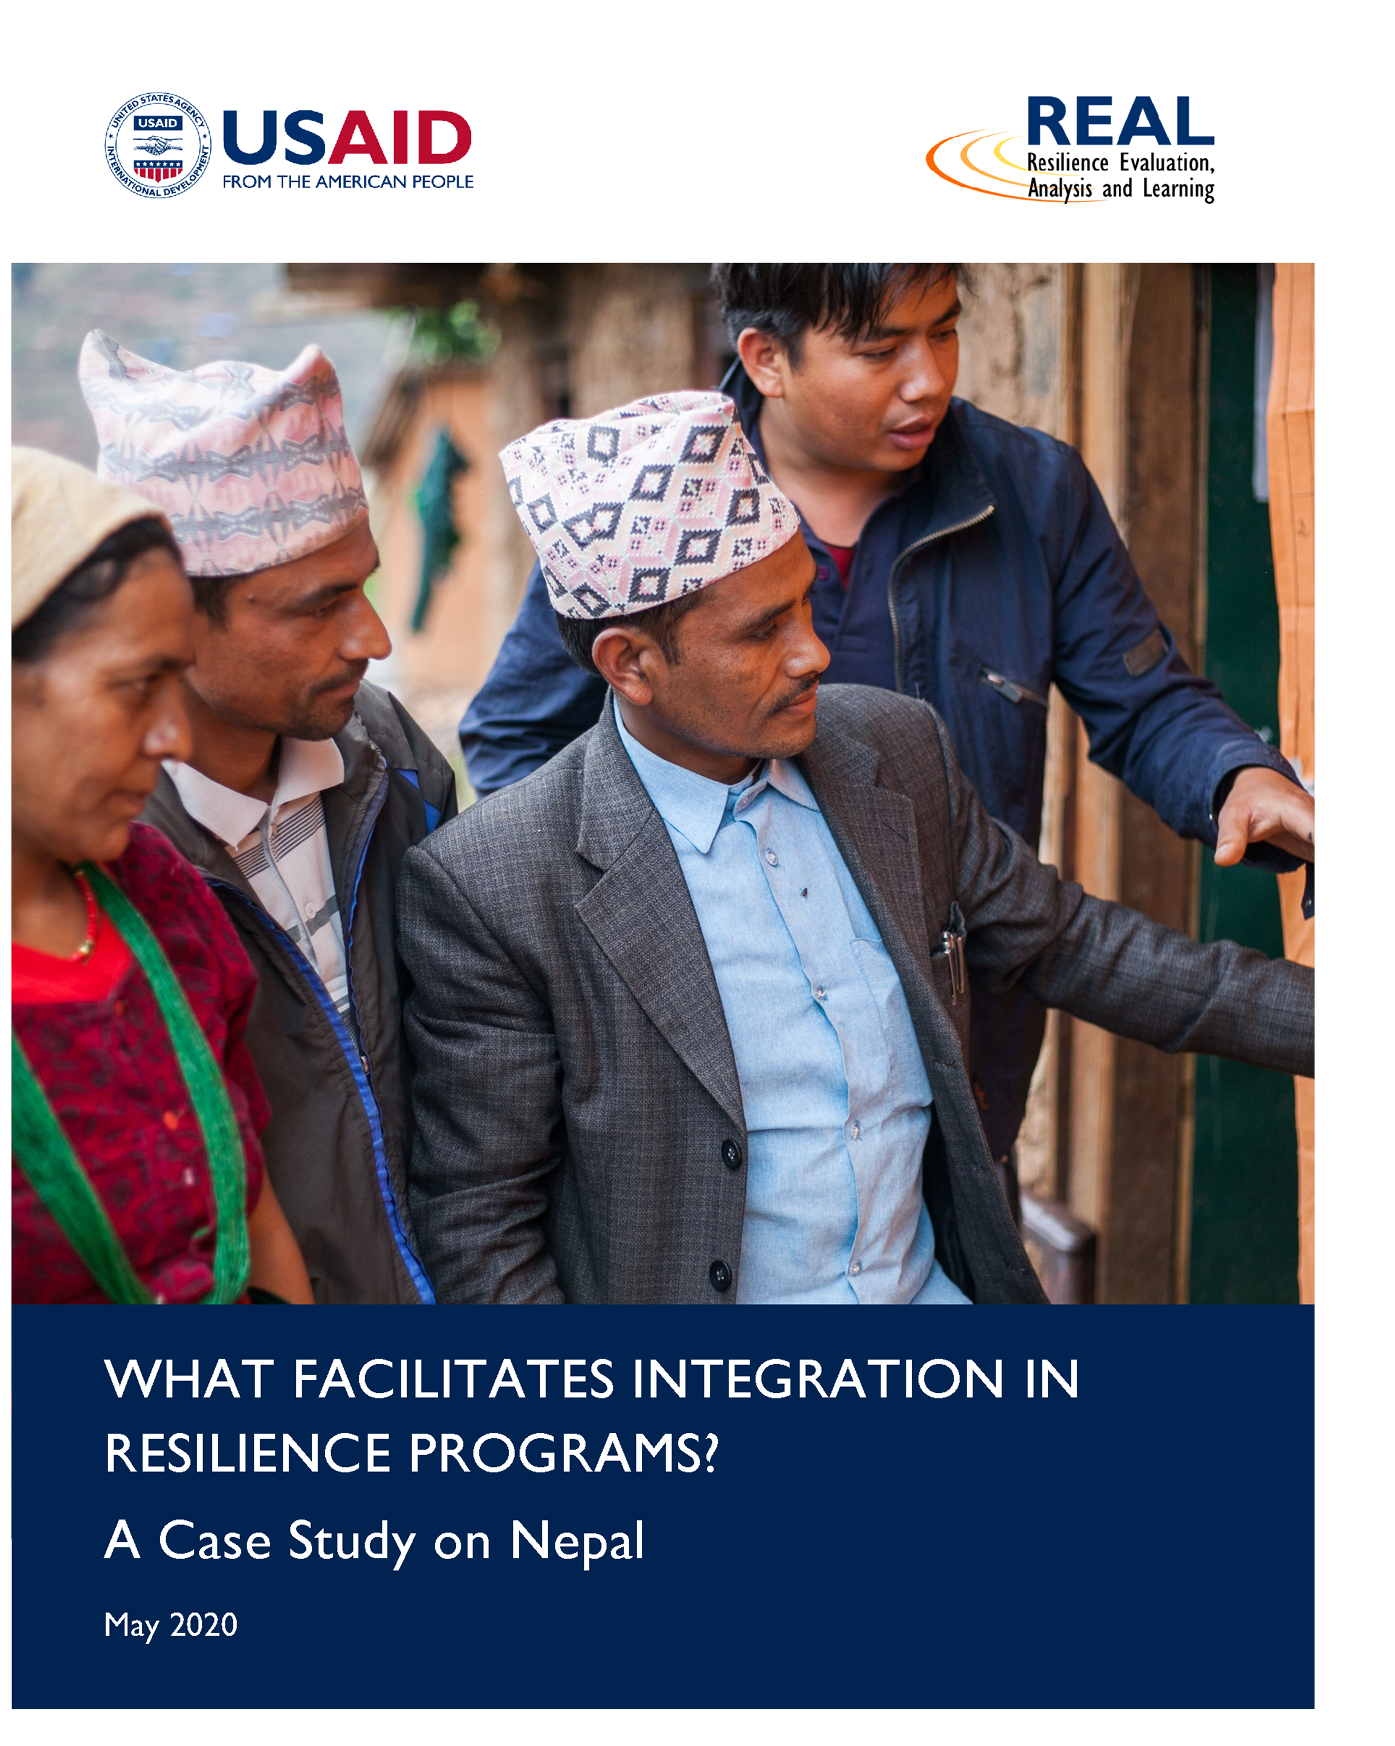 Cover image of a case study on Nepal